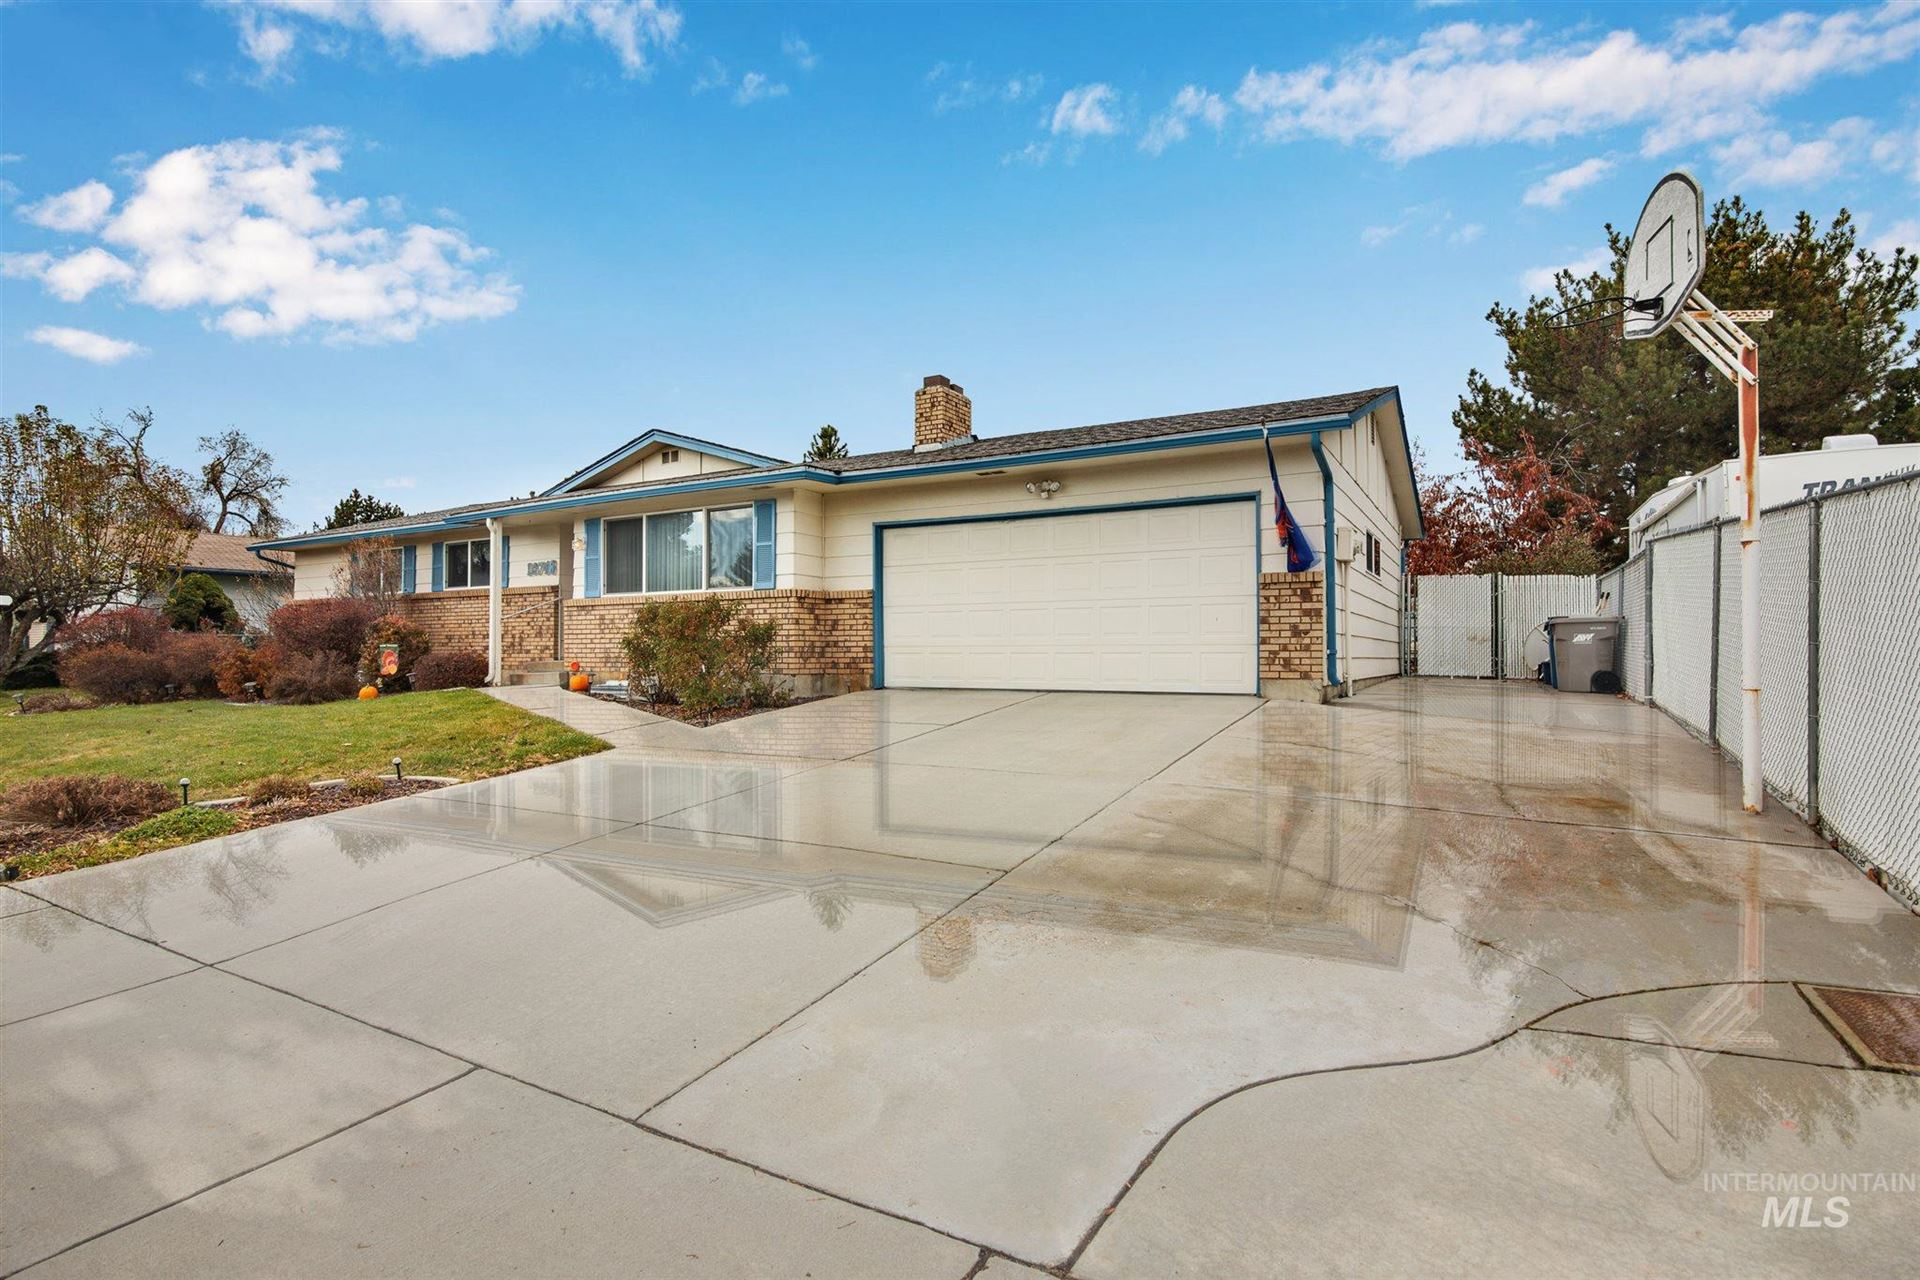 Photo of 10748 W Sandhurst Dr, Boise, ID 83709 (MLS # 98787631)